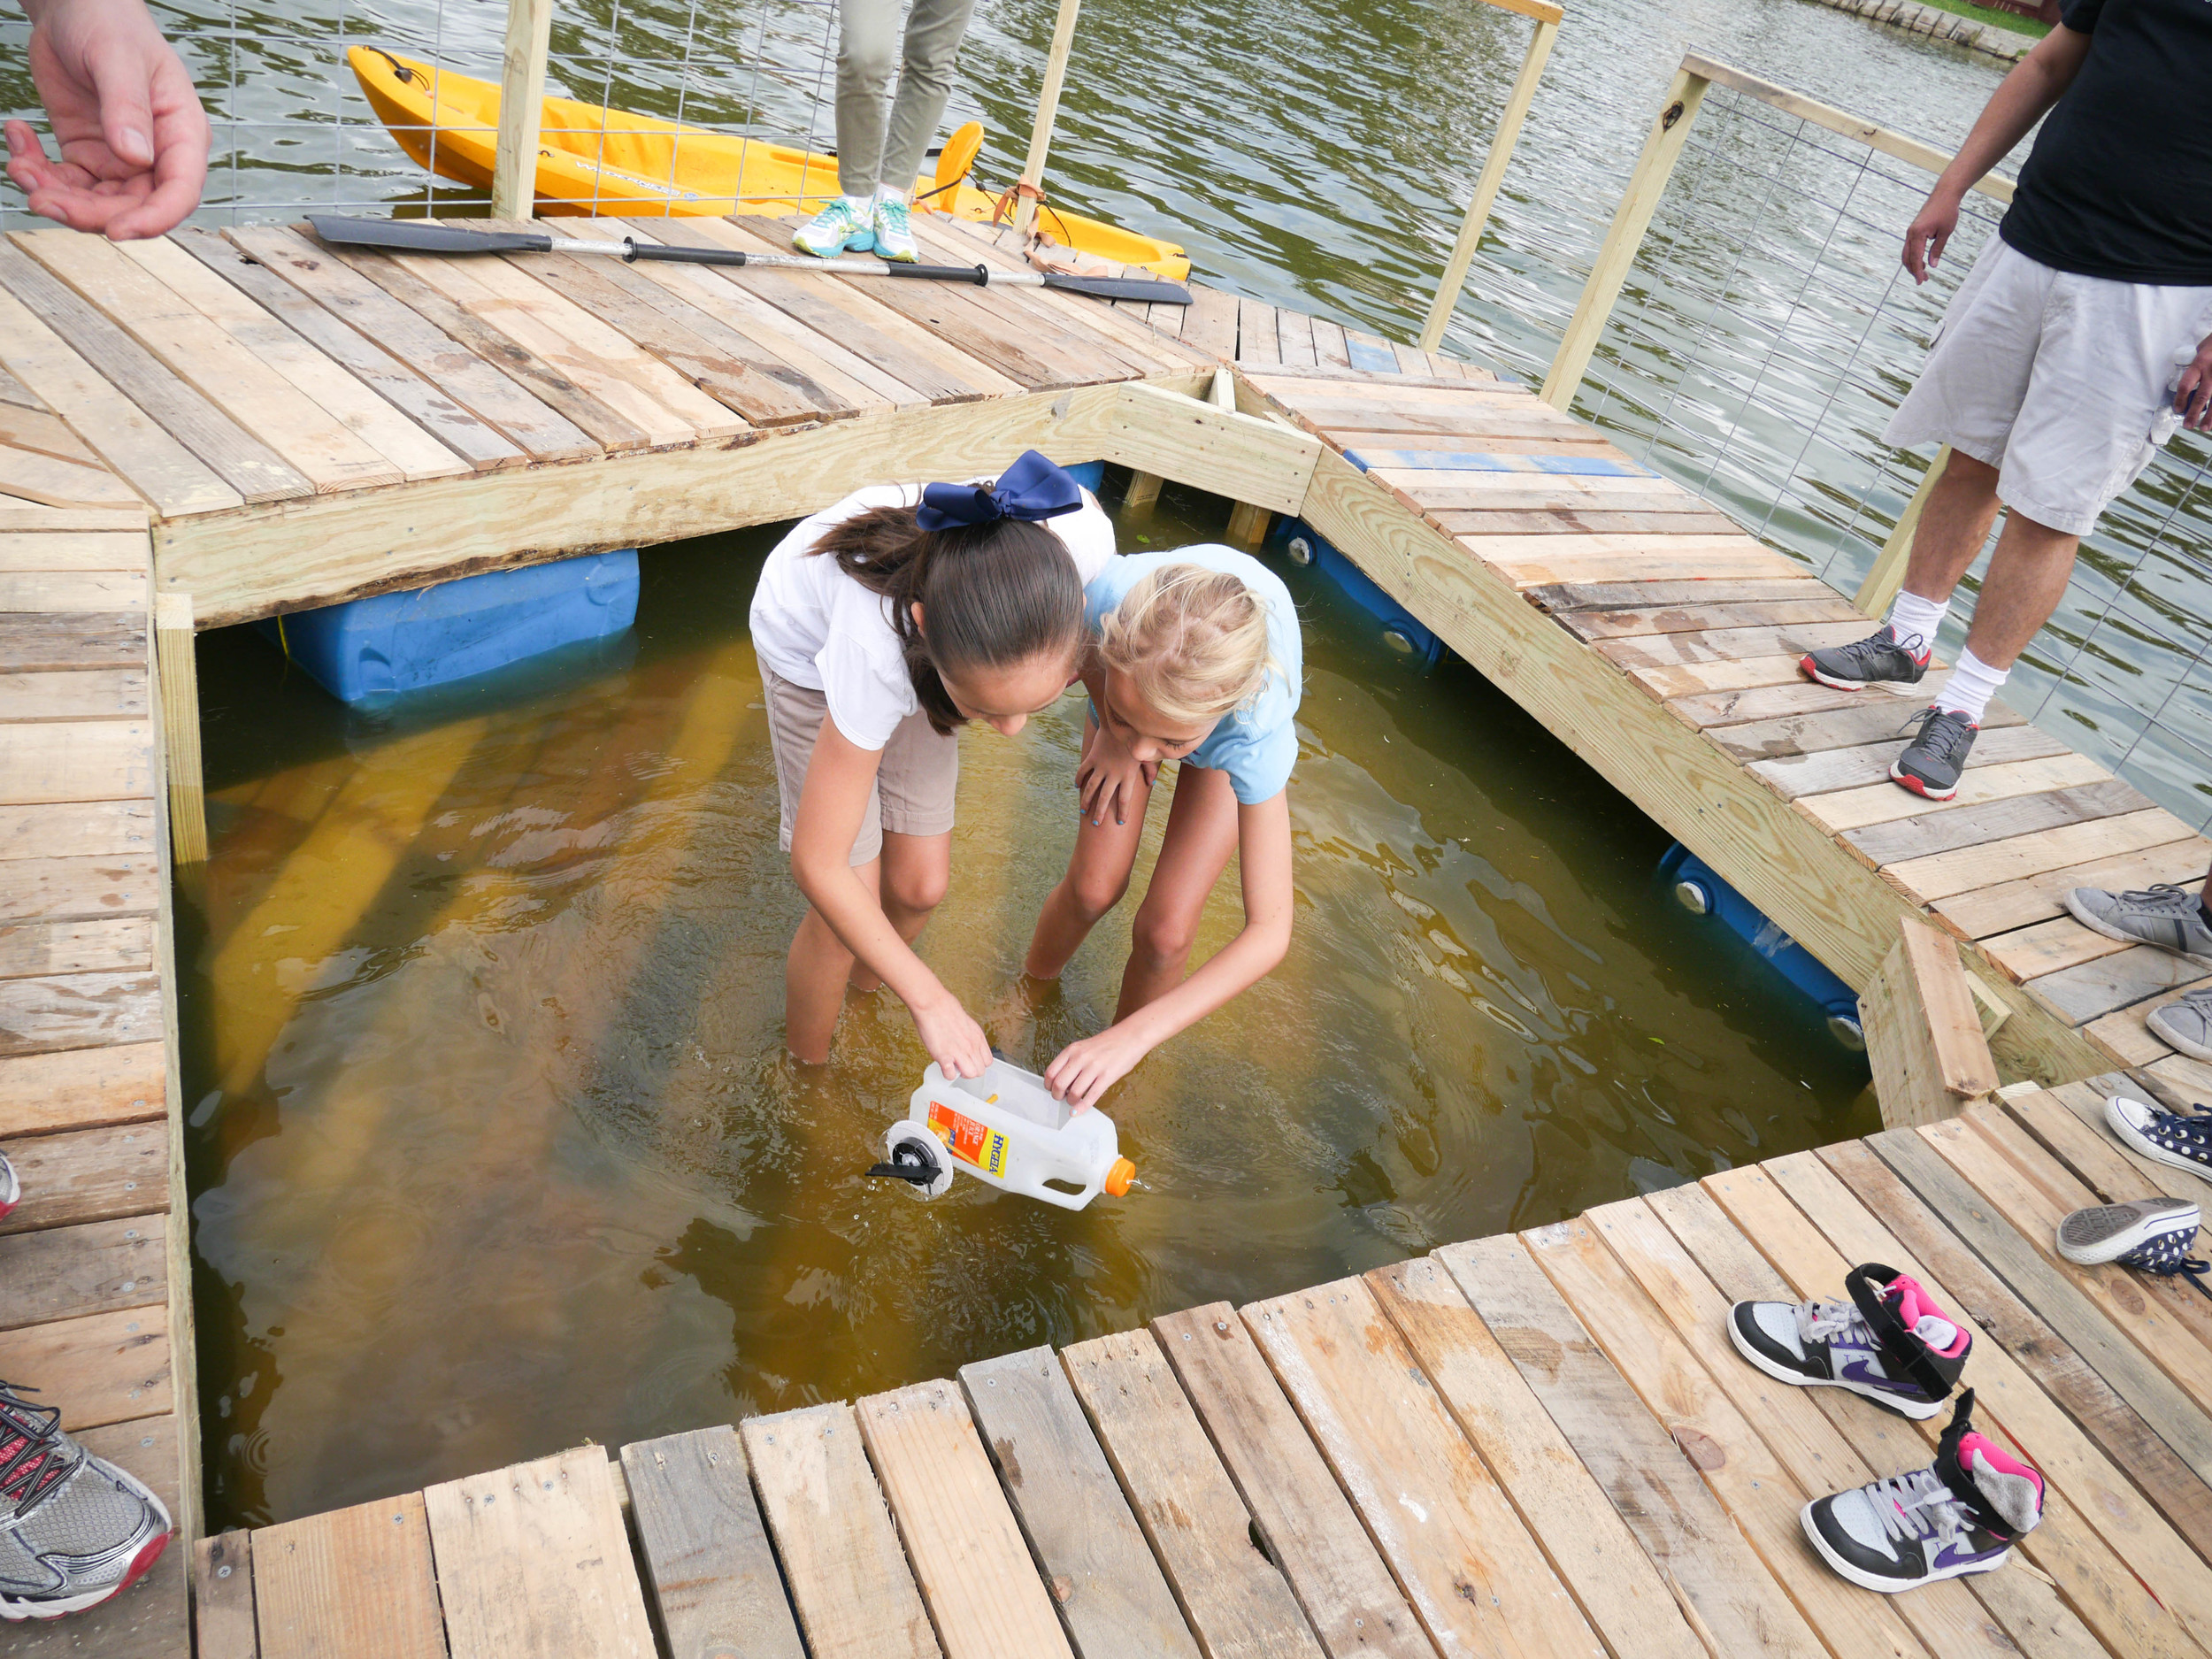 Kids playing with homemade boats.